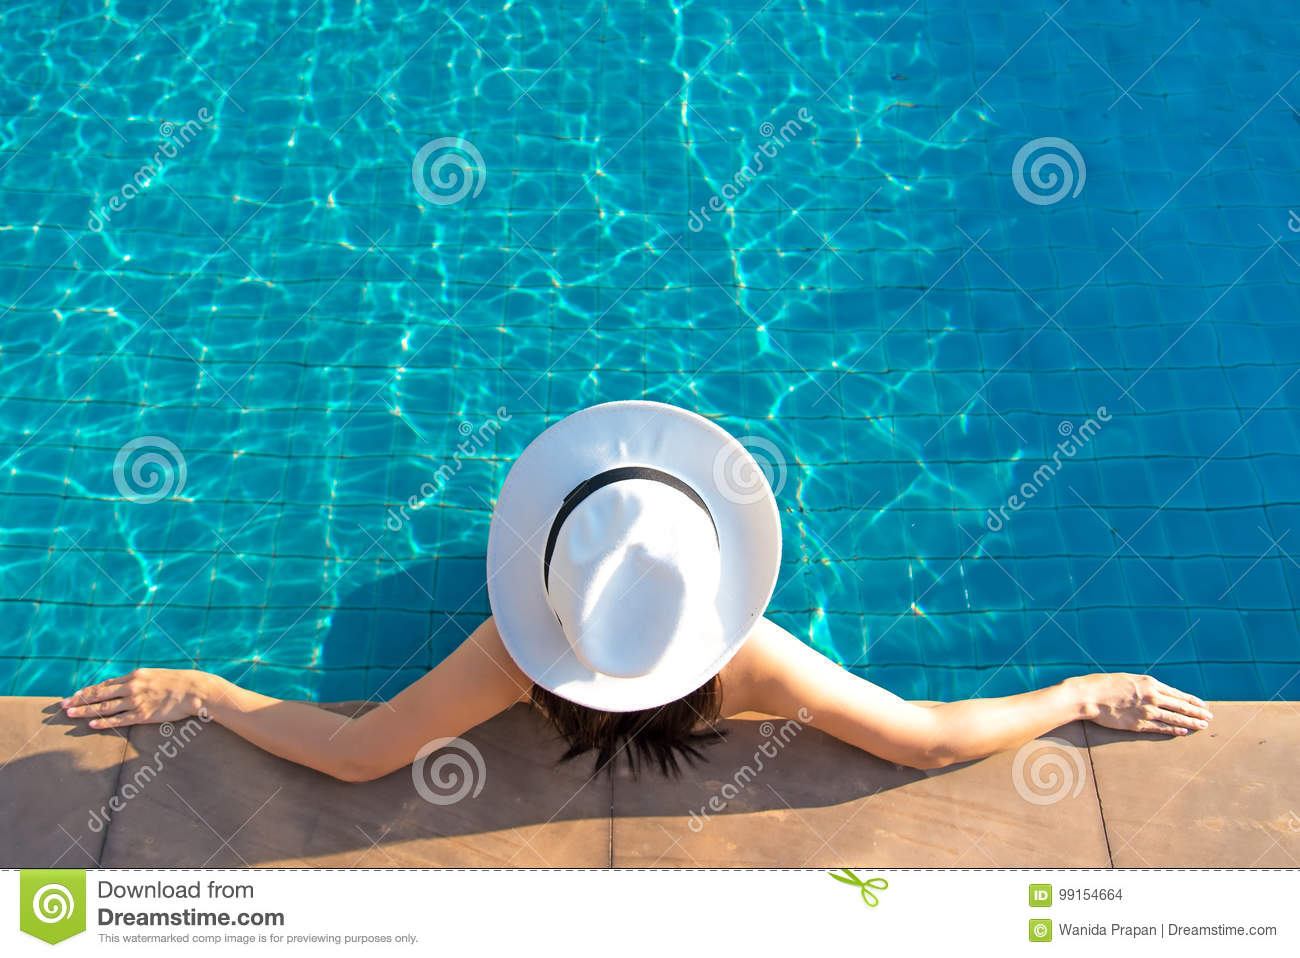 Download Happy Smiling Asian Woman With Straw Hat Relax And Luxury In Swimming Pool At Resort Hotel, Lifestyle And Happy Day Stock Photo - Image of leisure, blue: 99154664